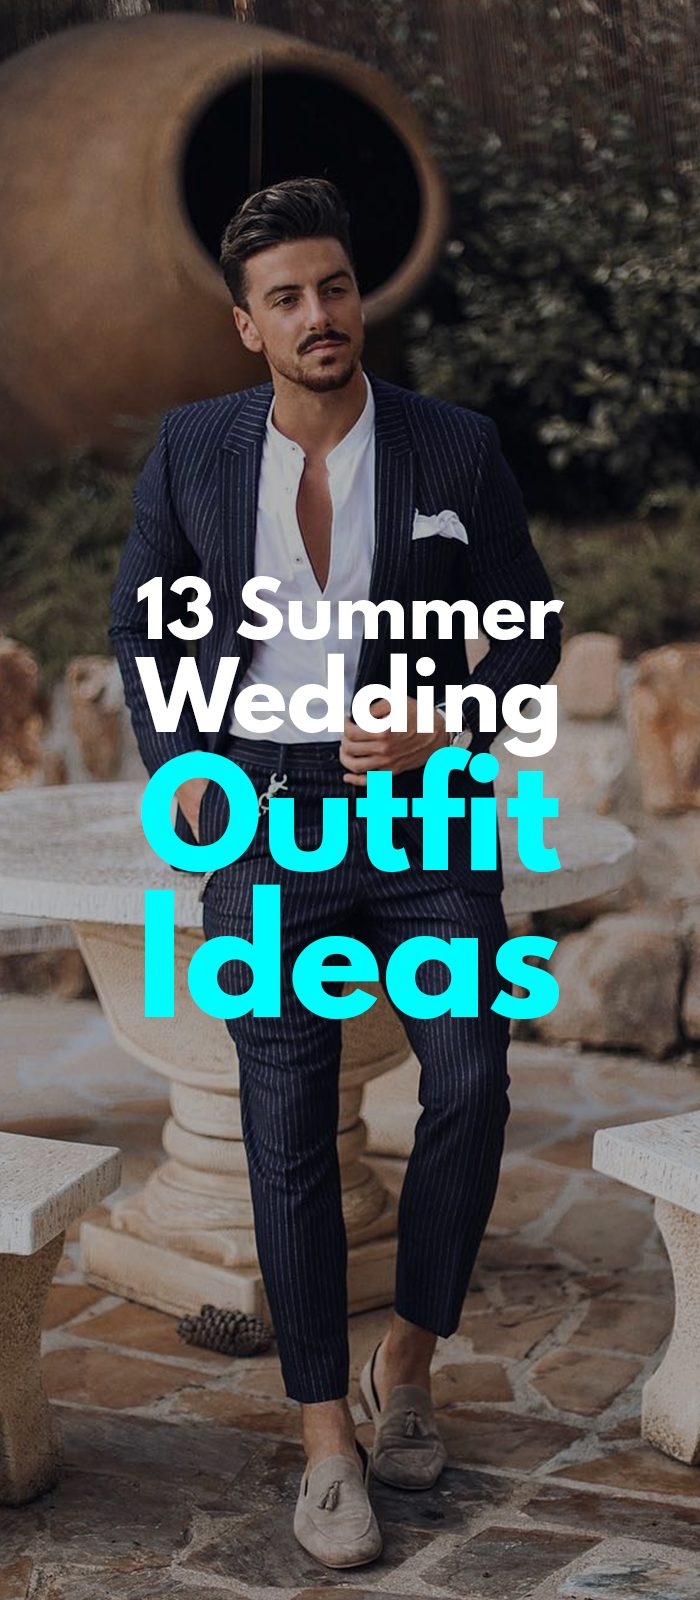 13 Ways To Dress For A Summer Wedding